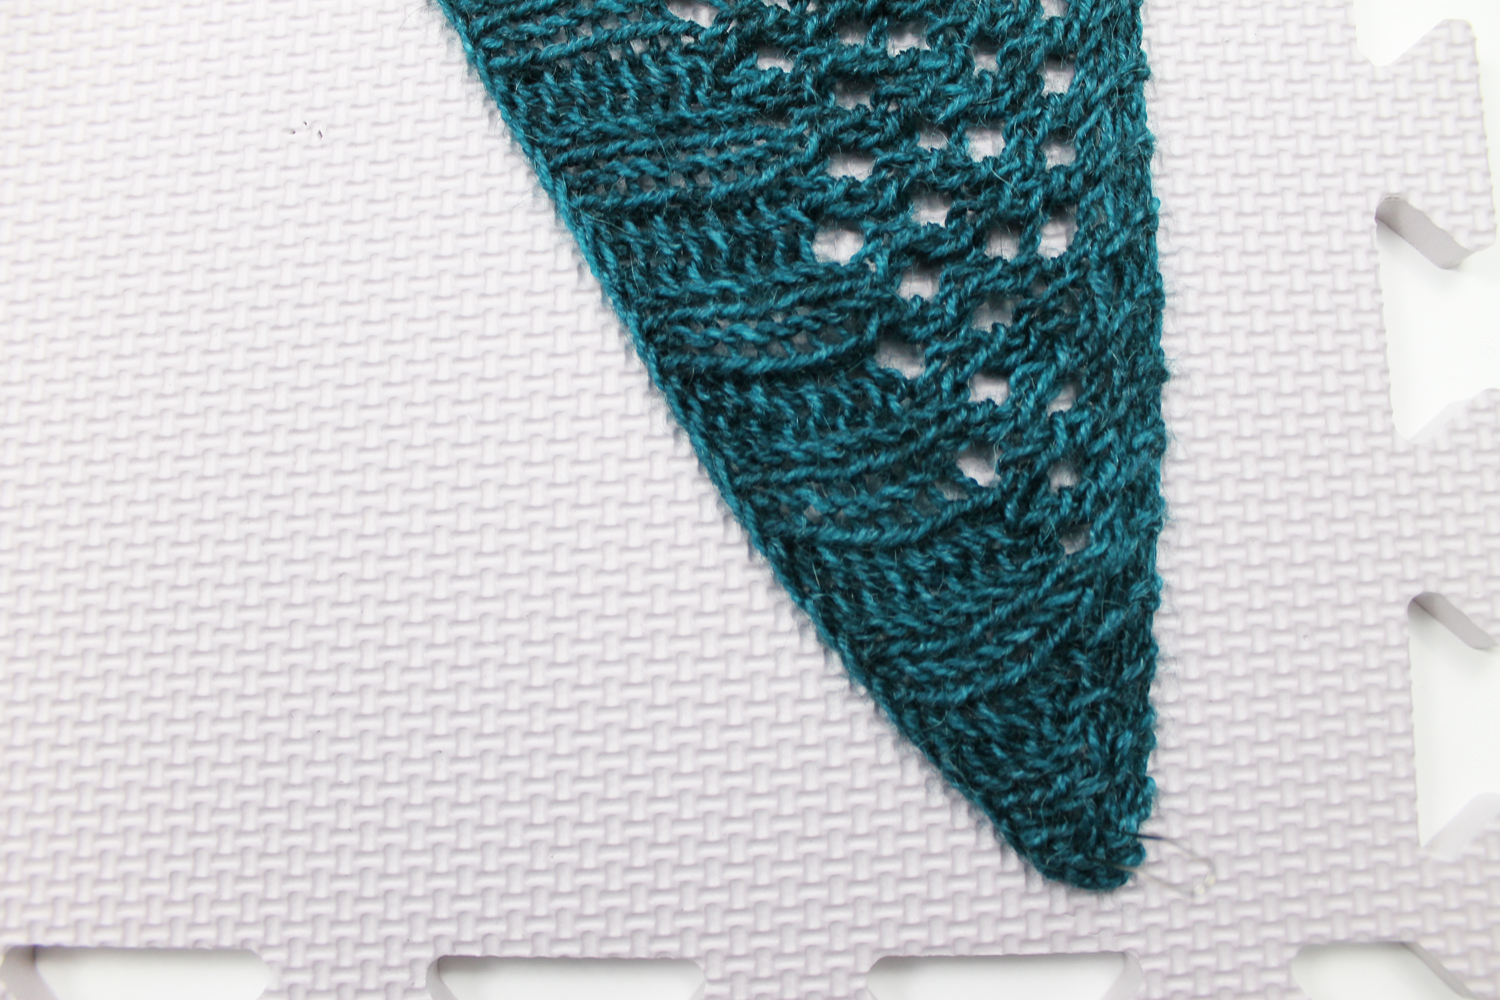 Pinning knit shawl corners